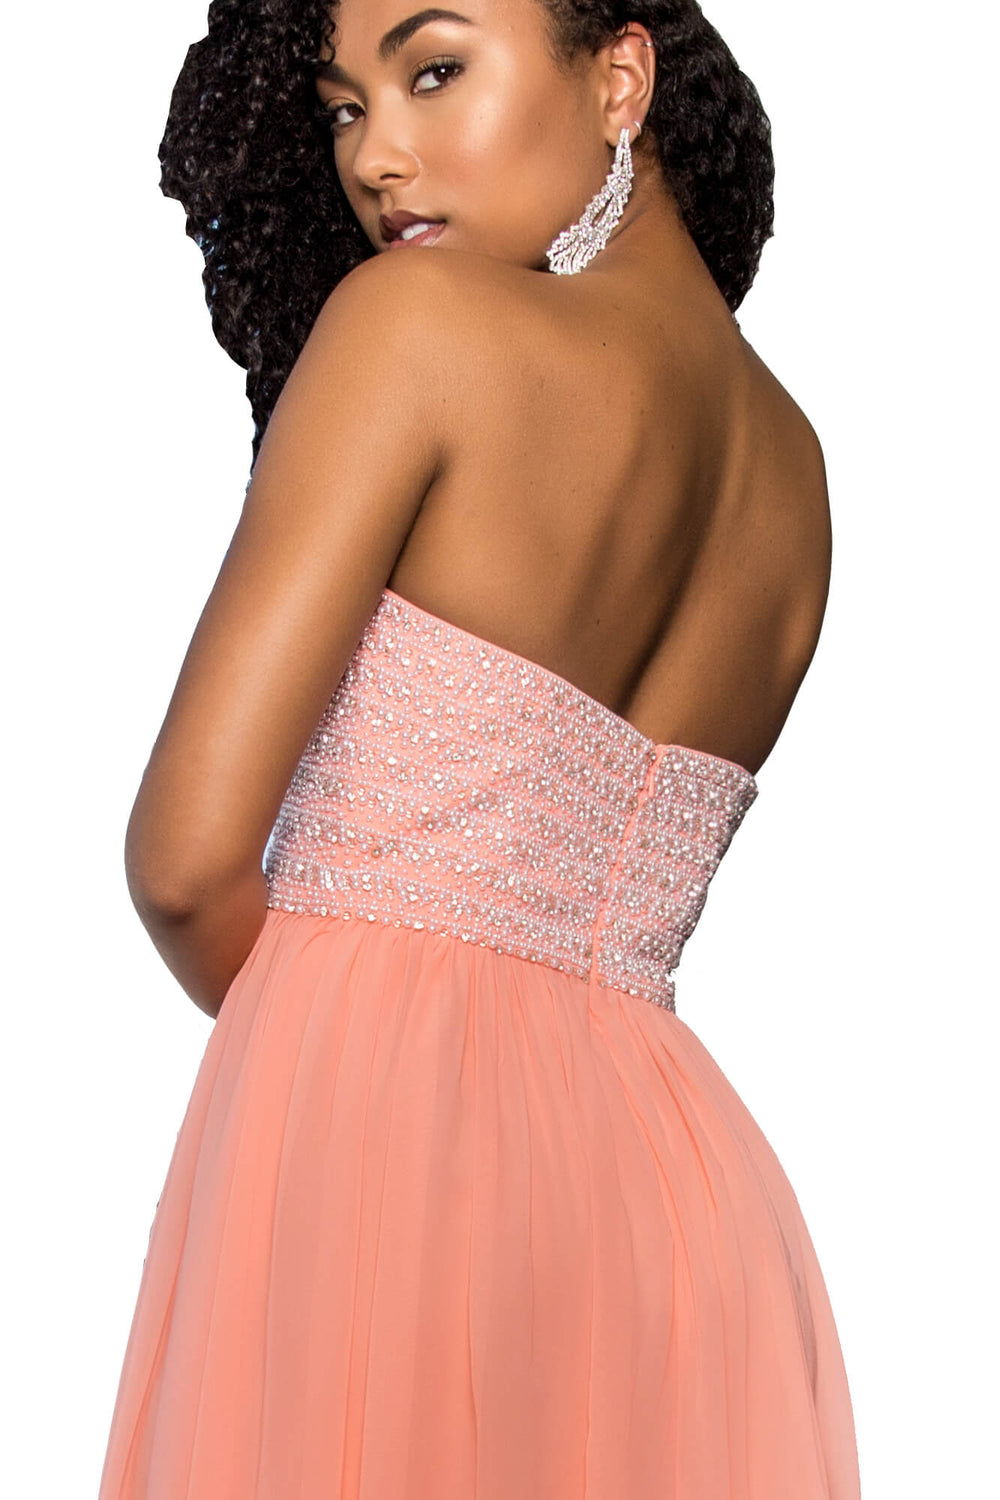 Strapless Long Prom Evening Gown - The Dress Outlet